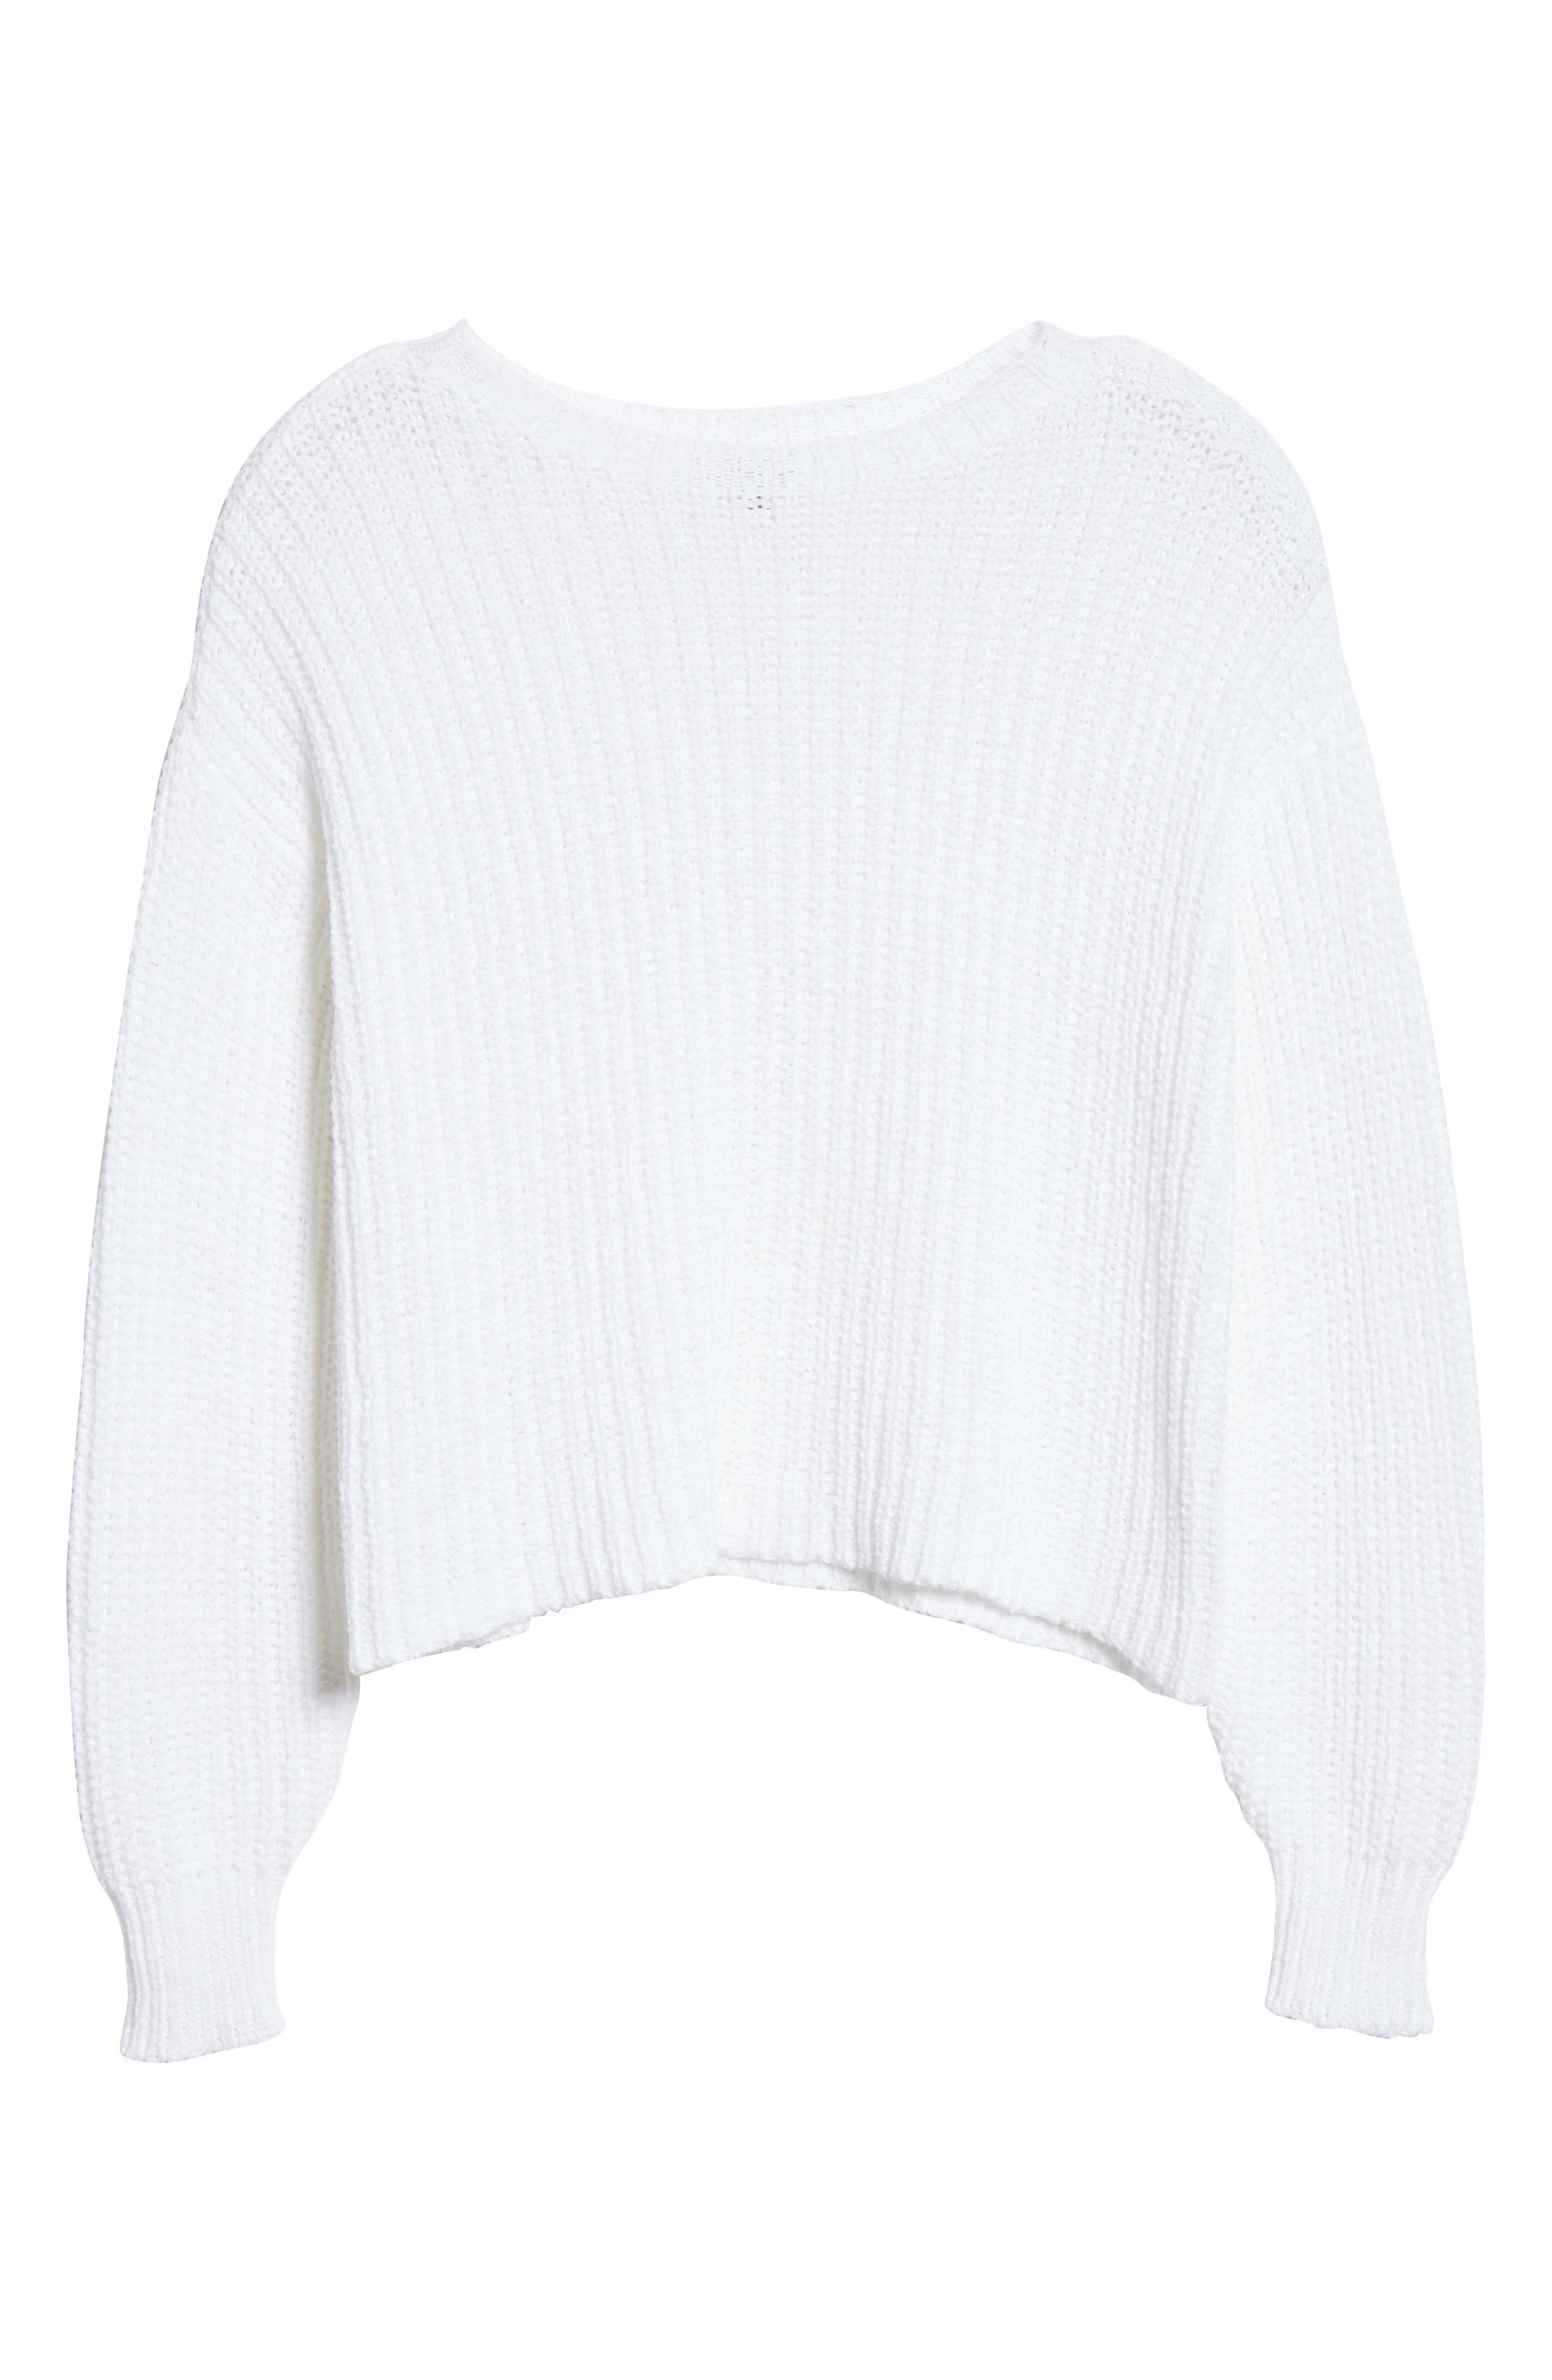 Crewneck Crop Shaker Sweater,                             Alternate thumbnail 7, color,                             WHITE